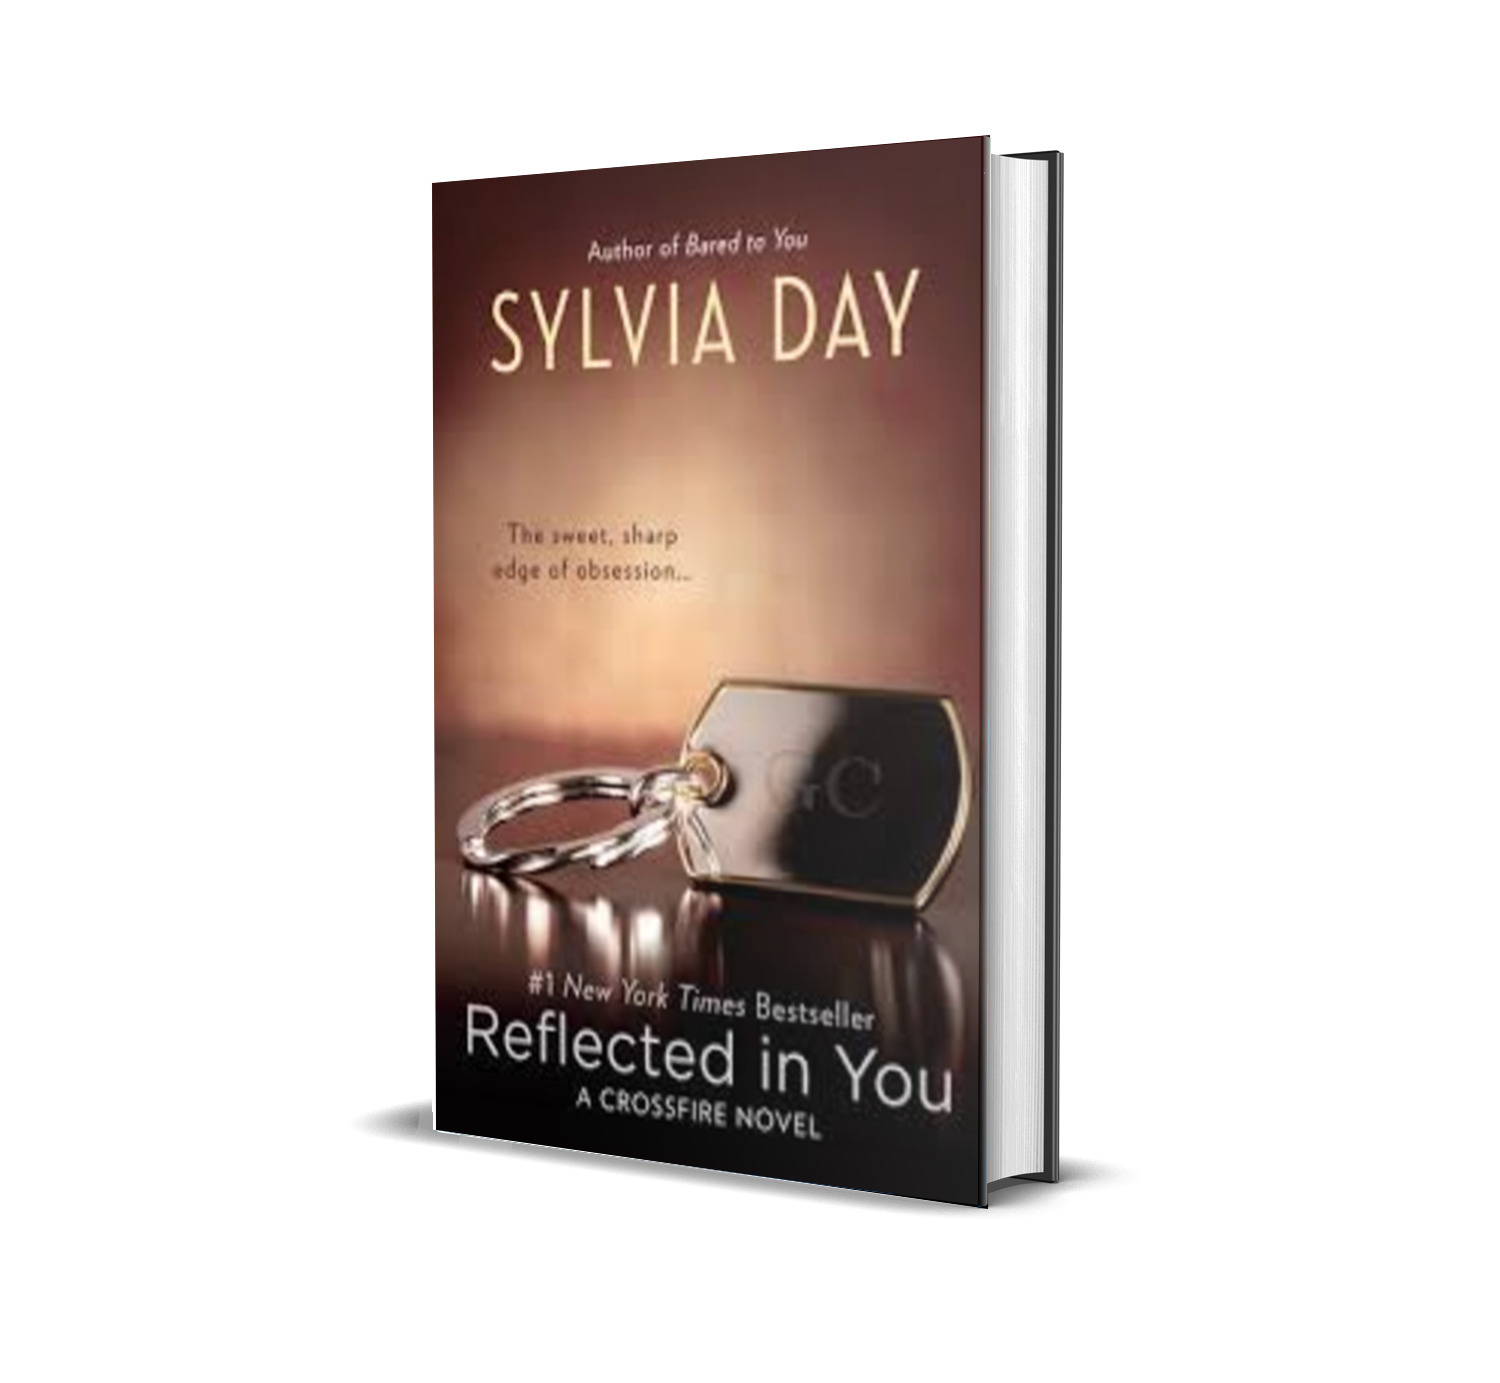 Reflected in You - Sylvia Day[Crossfire 2]